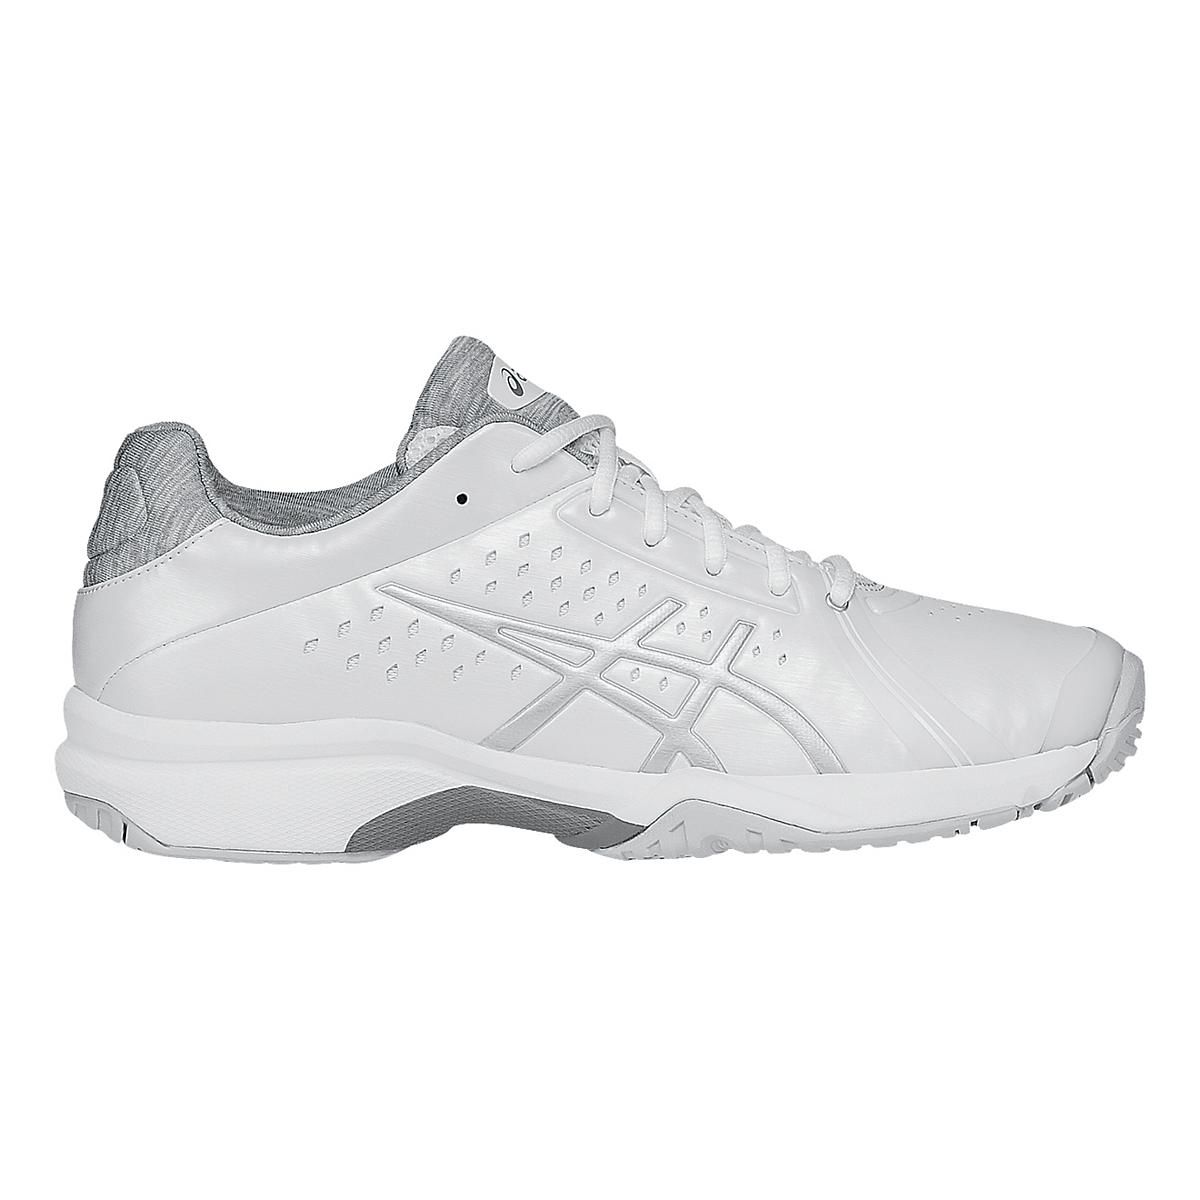 37731061de381 Womens ASICS GEL-Court Bella Court Shoe at Road Runner Sports